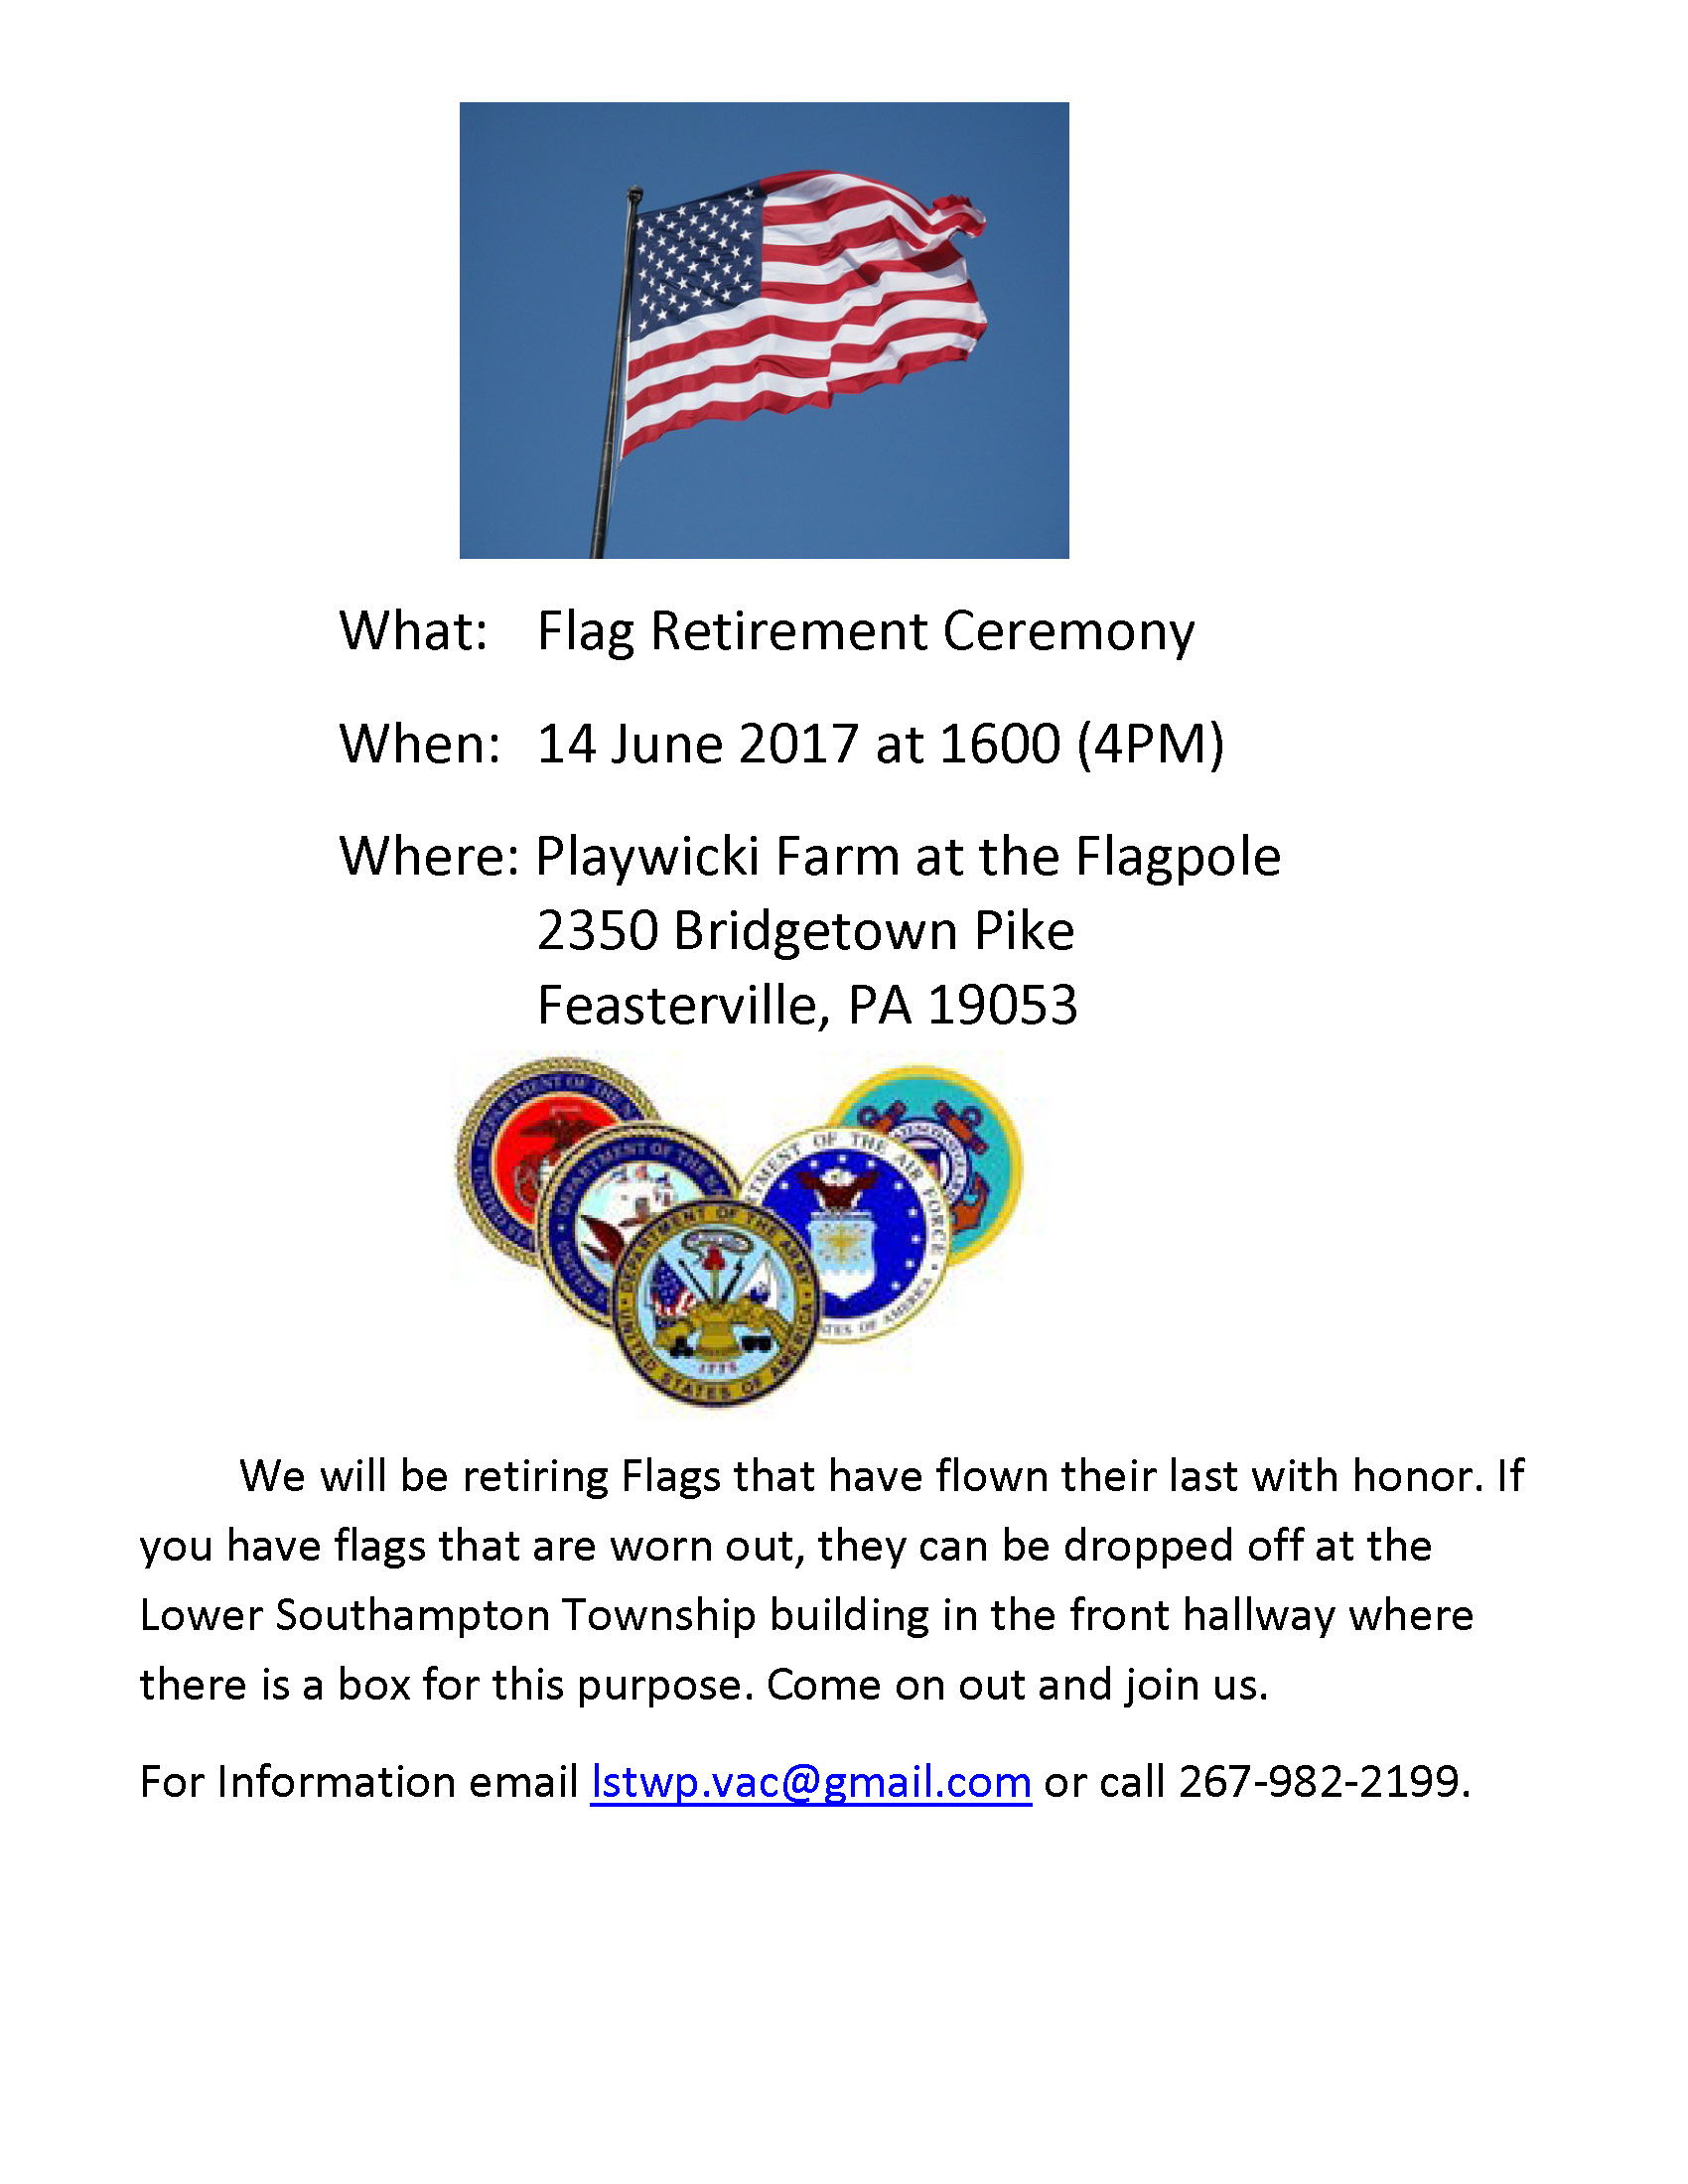 Flag Day Flier 2017